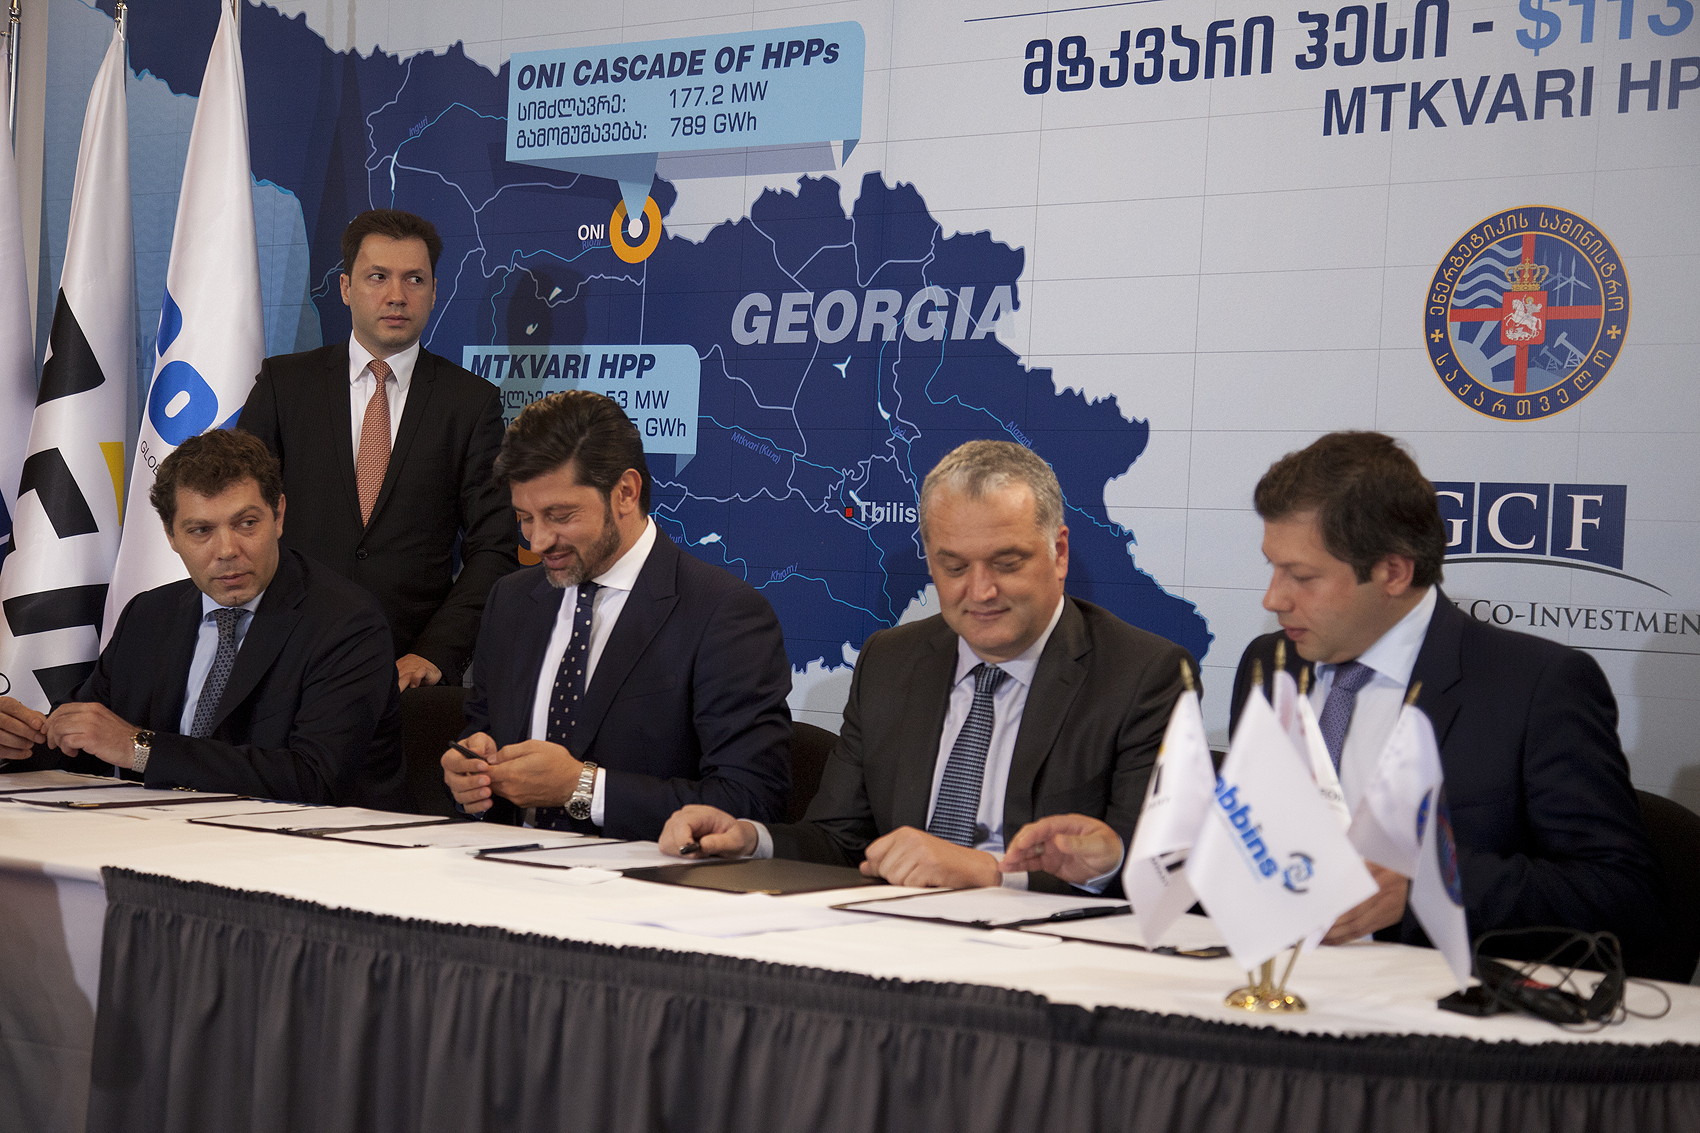 MoU signed for a cascade of Oni HHPs